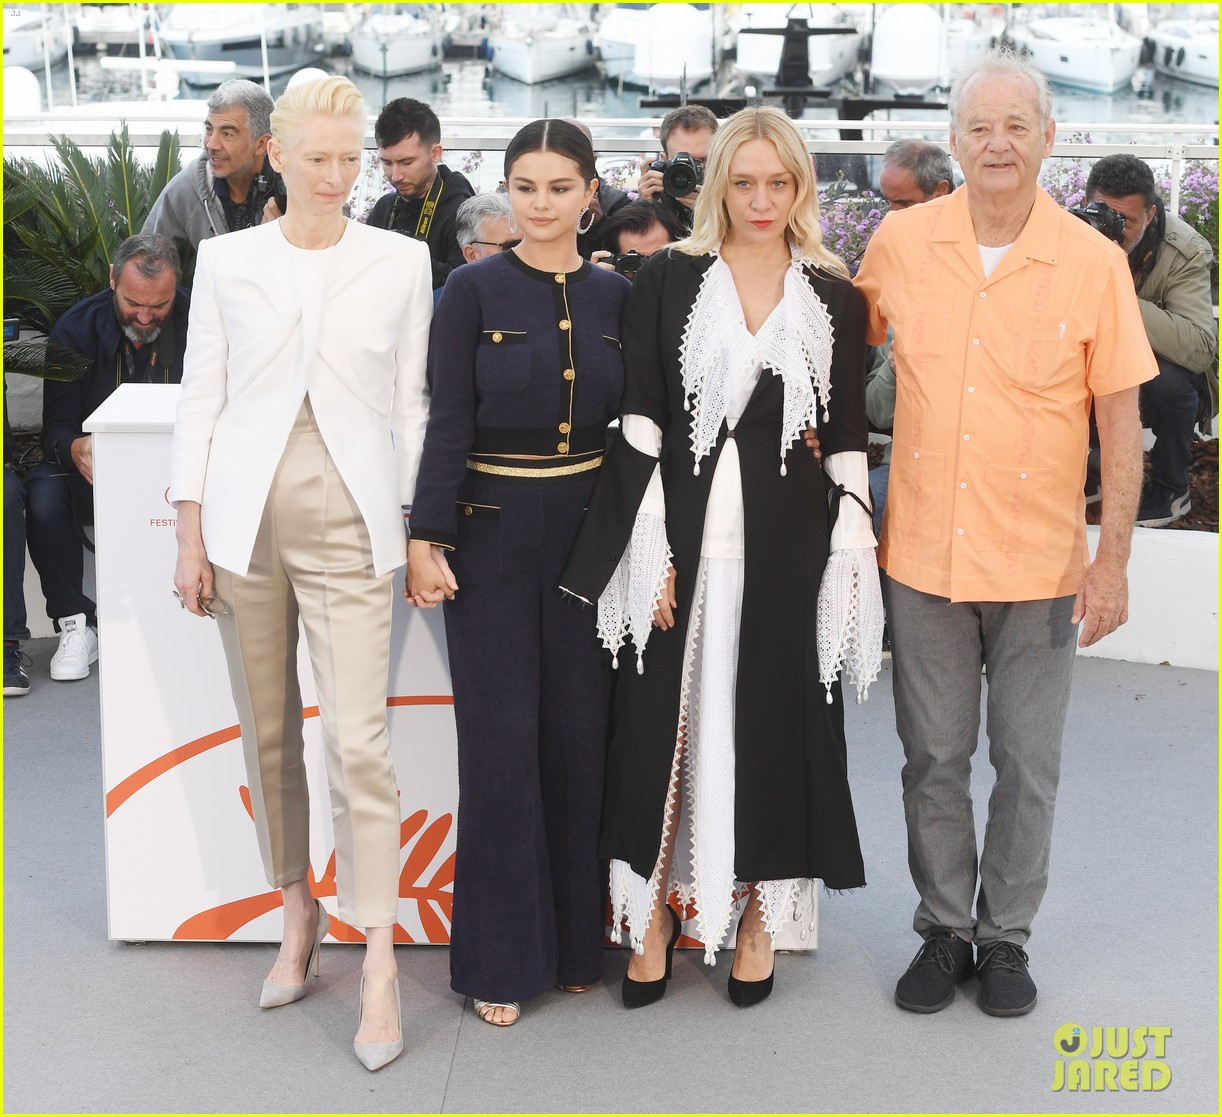 selena gomez joins the dead dont die cast at cannes photo call 05